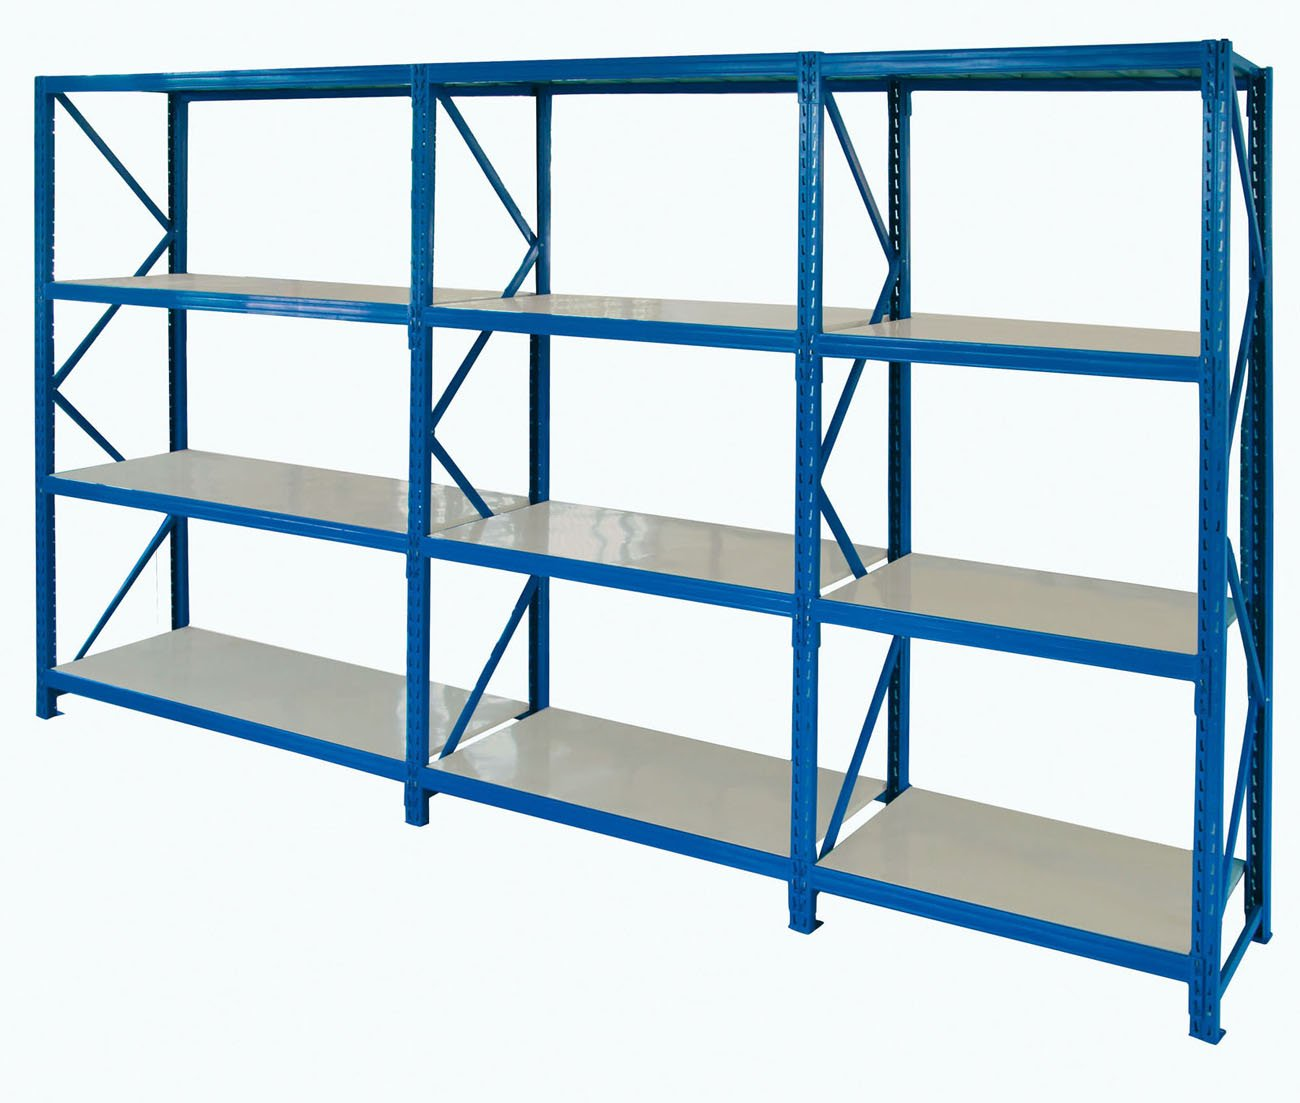 Heavy Duty Warehouse Storage Pallet Rack,Metal Rack And Shelving  Systems,Adjustable Heavy Shelves Warehouse Steel   Buy Storage Truck Tire  Rack,Factory Good ...